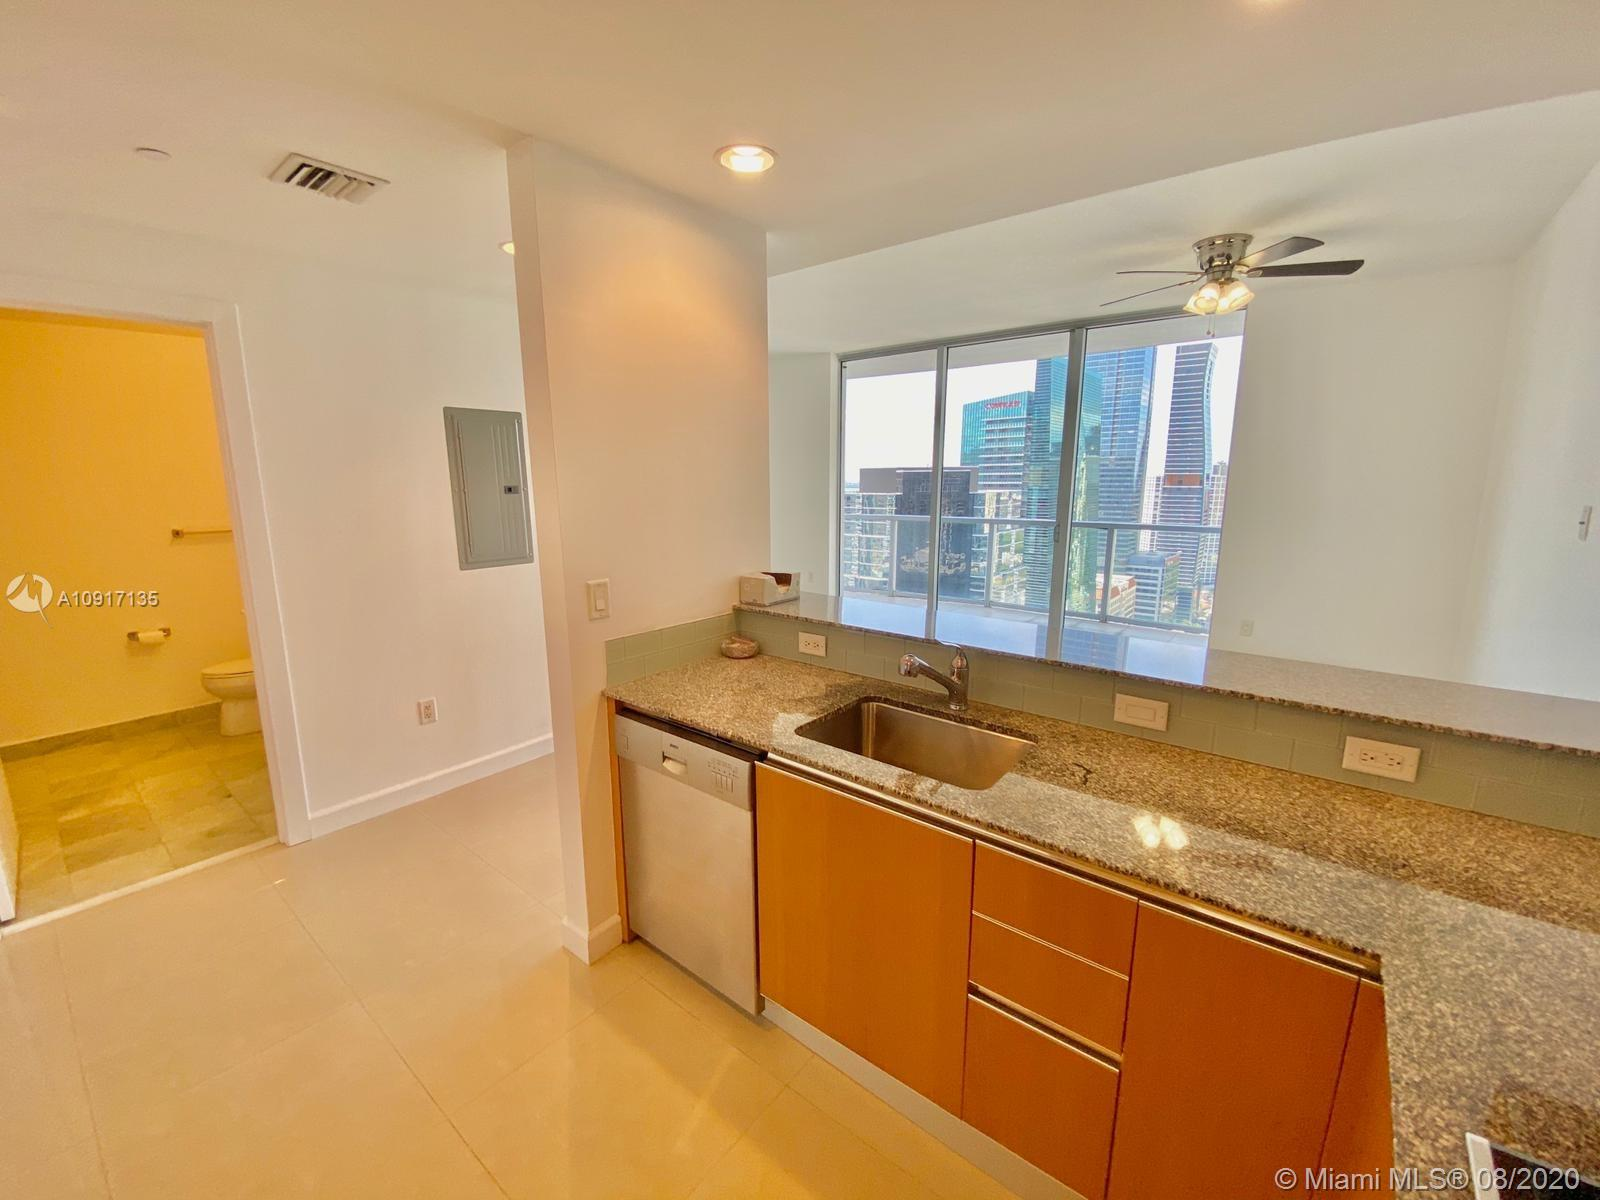 ONLY 2 MONTHS TO MOVE IN!!!! Most desired studio line in the building!!! Top of the line appliances , direct water view. Washer and dryer in the unit. 1 assigned parking space. Water and cable included on the rent